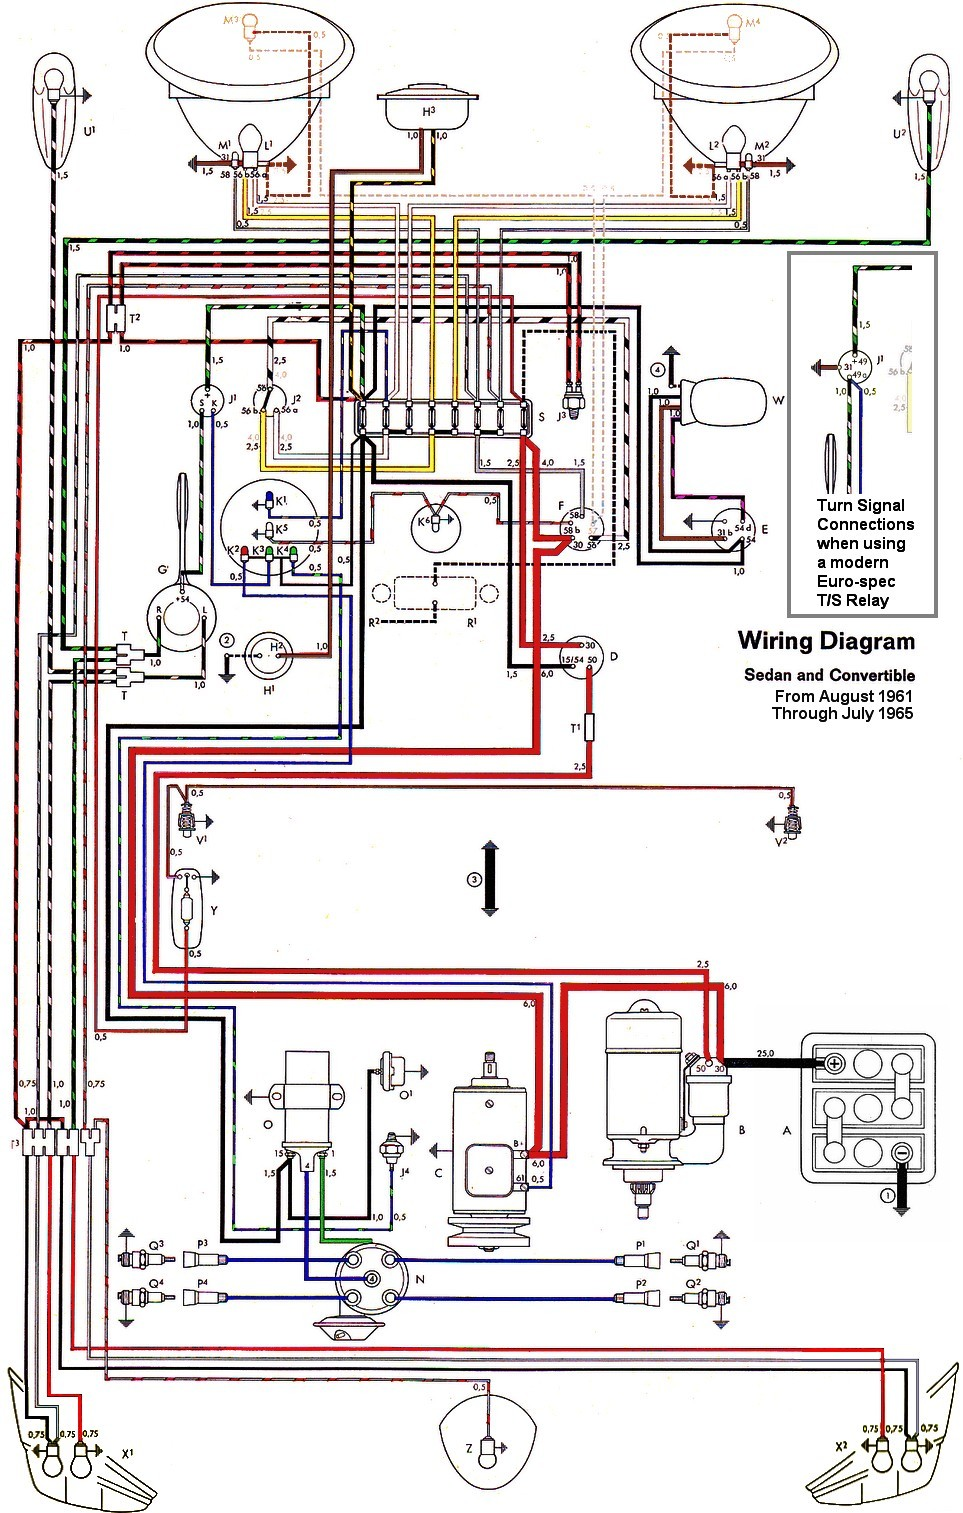 hight resolution of thesamba com type 1 wiring diagrams 1973 vw beetle ignition coil wiring diagram vw beetle wiring diagram 1973